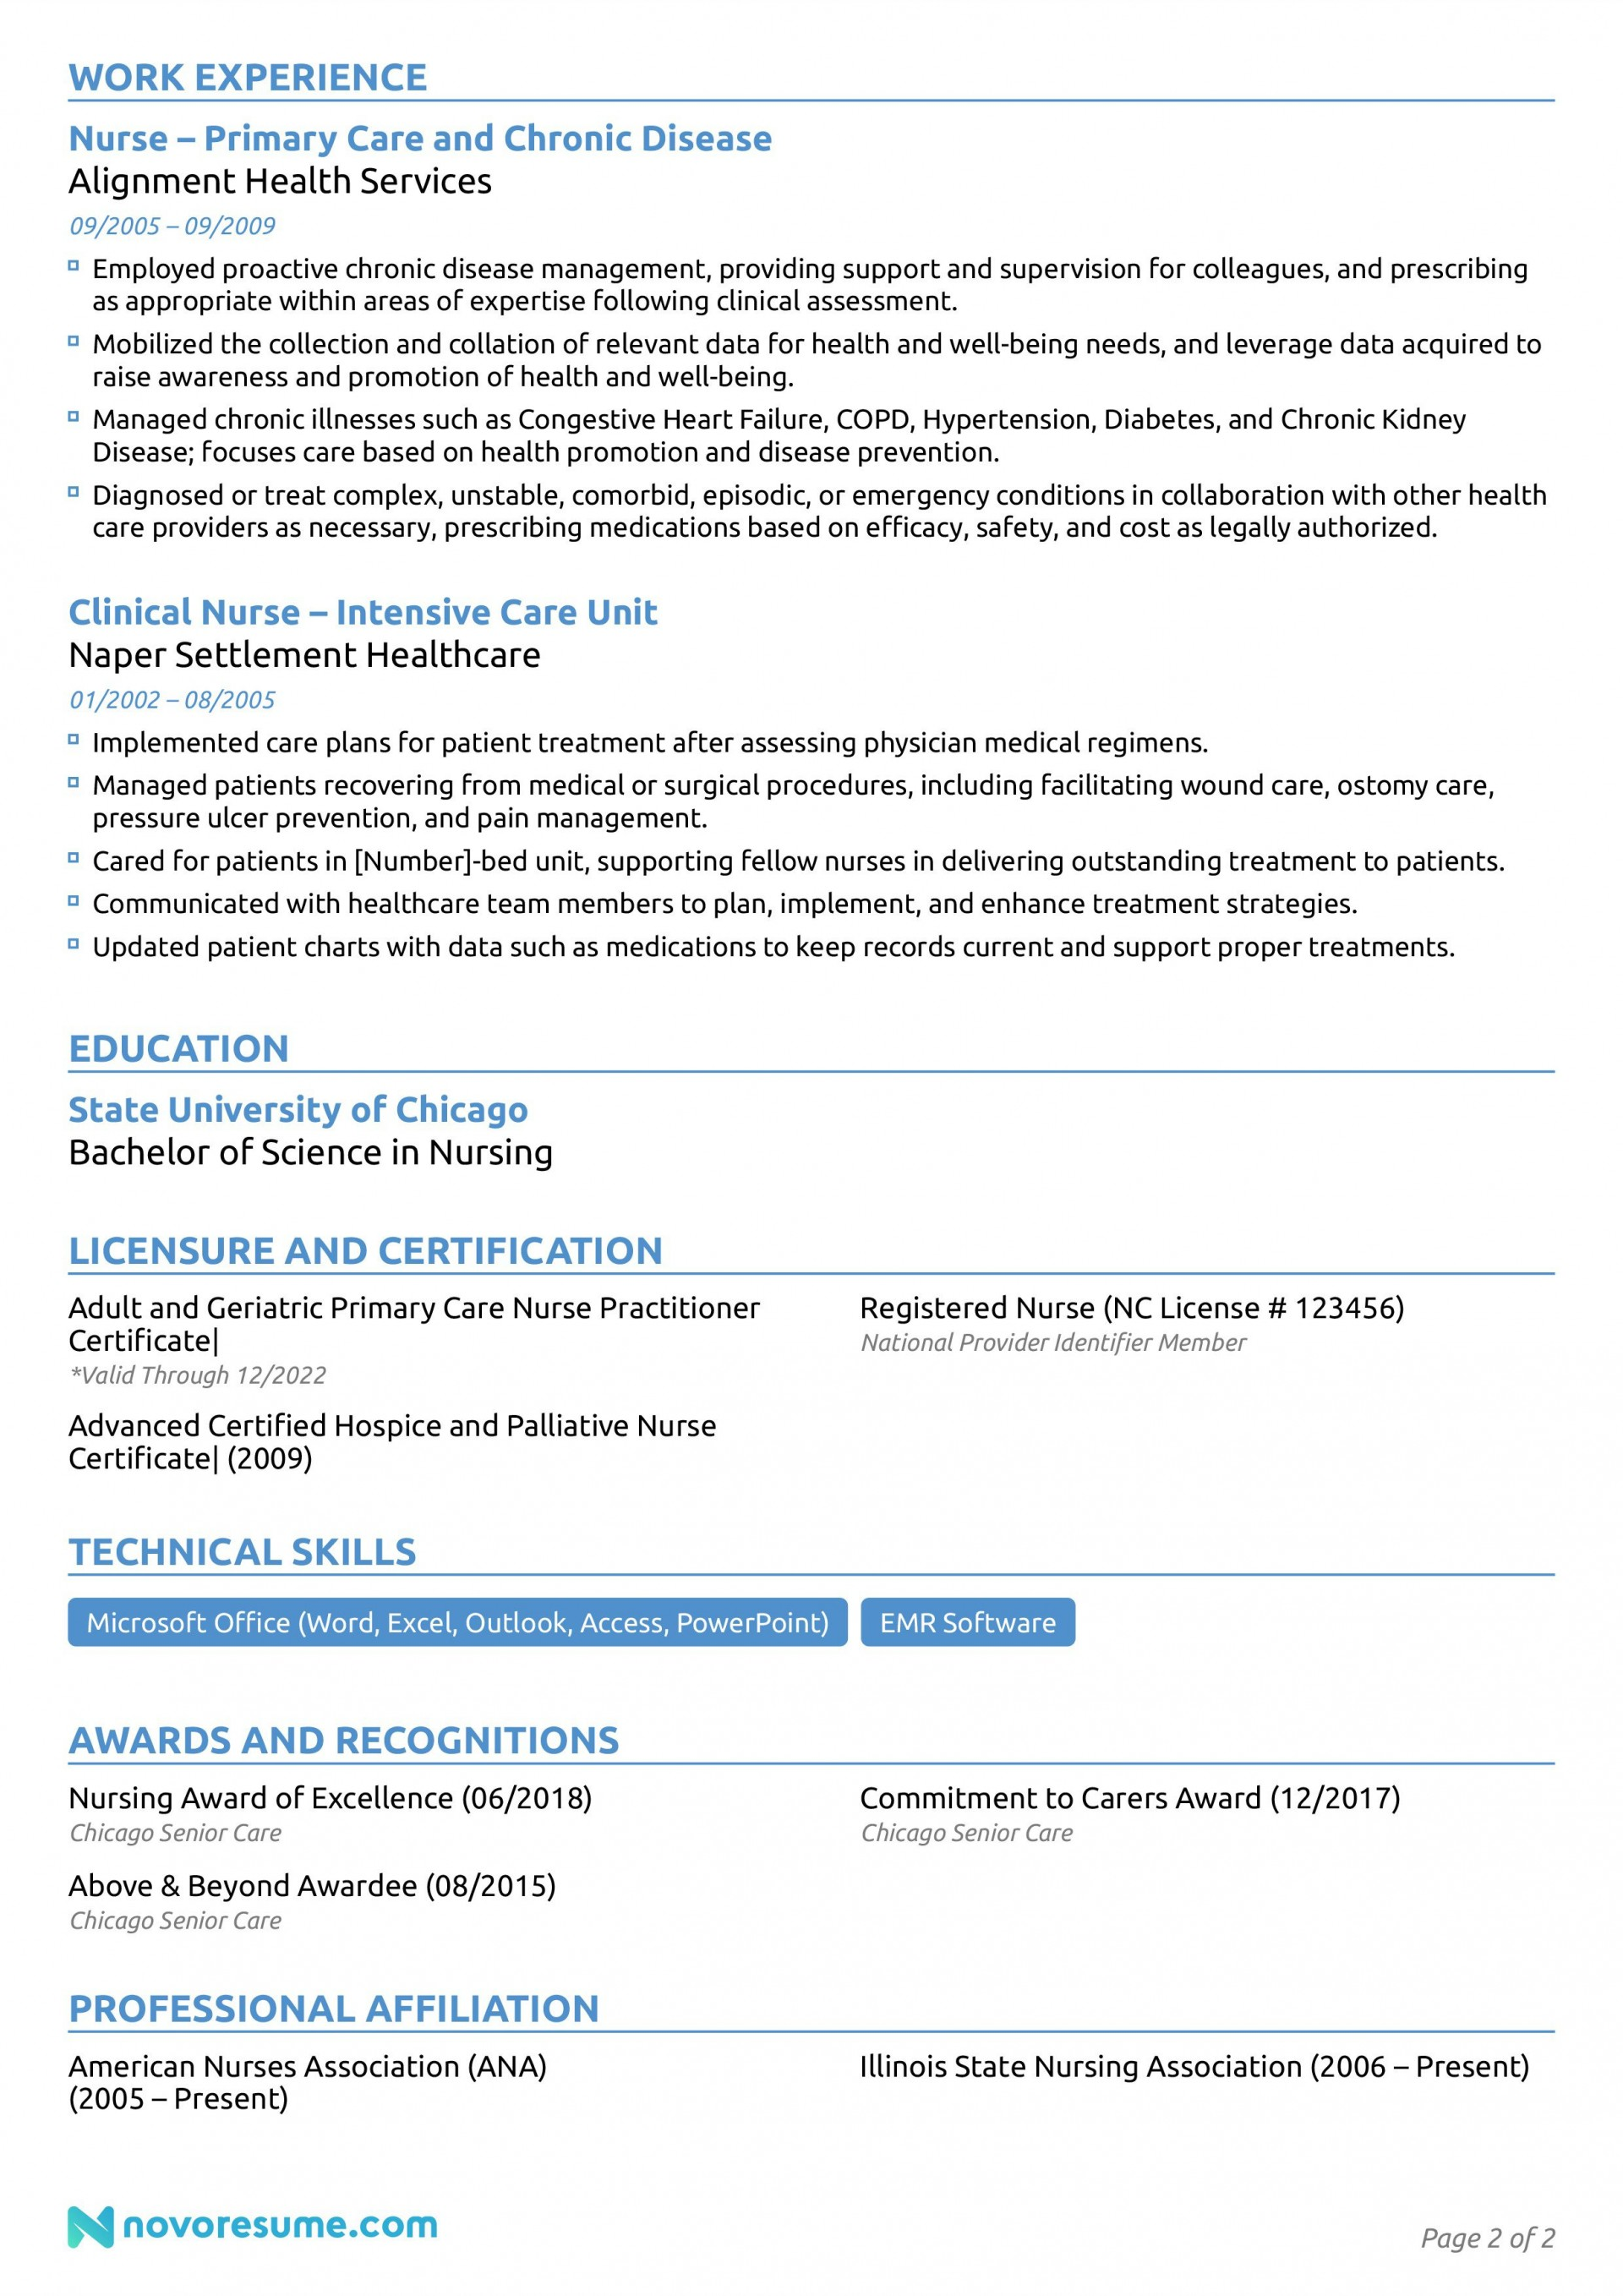 006 Phenomenal Nurse Resume Template Free Design  Graduate Rn1920